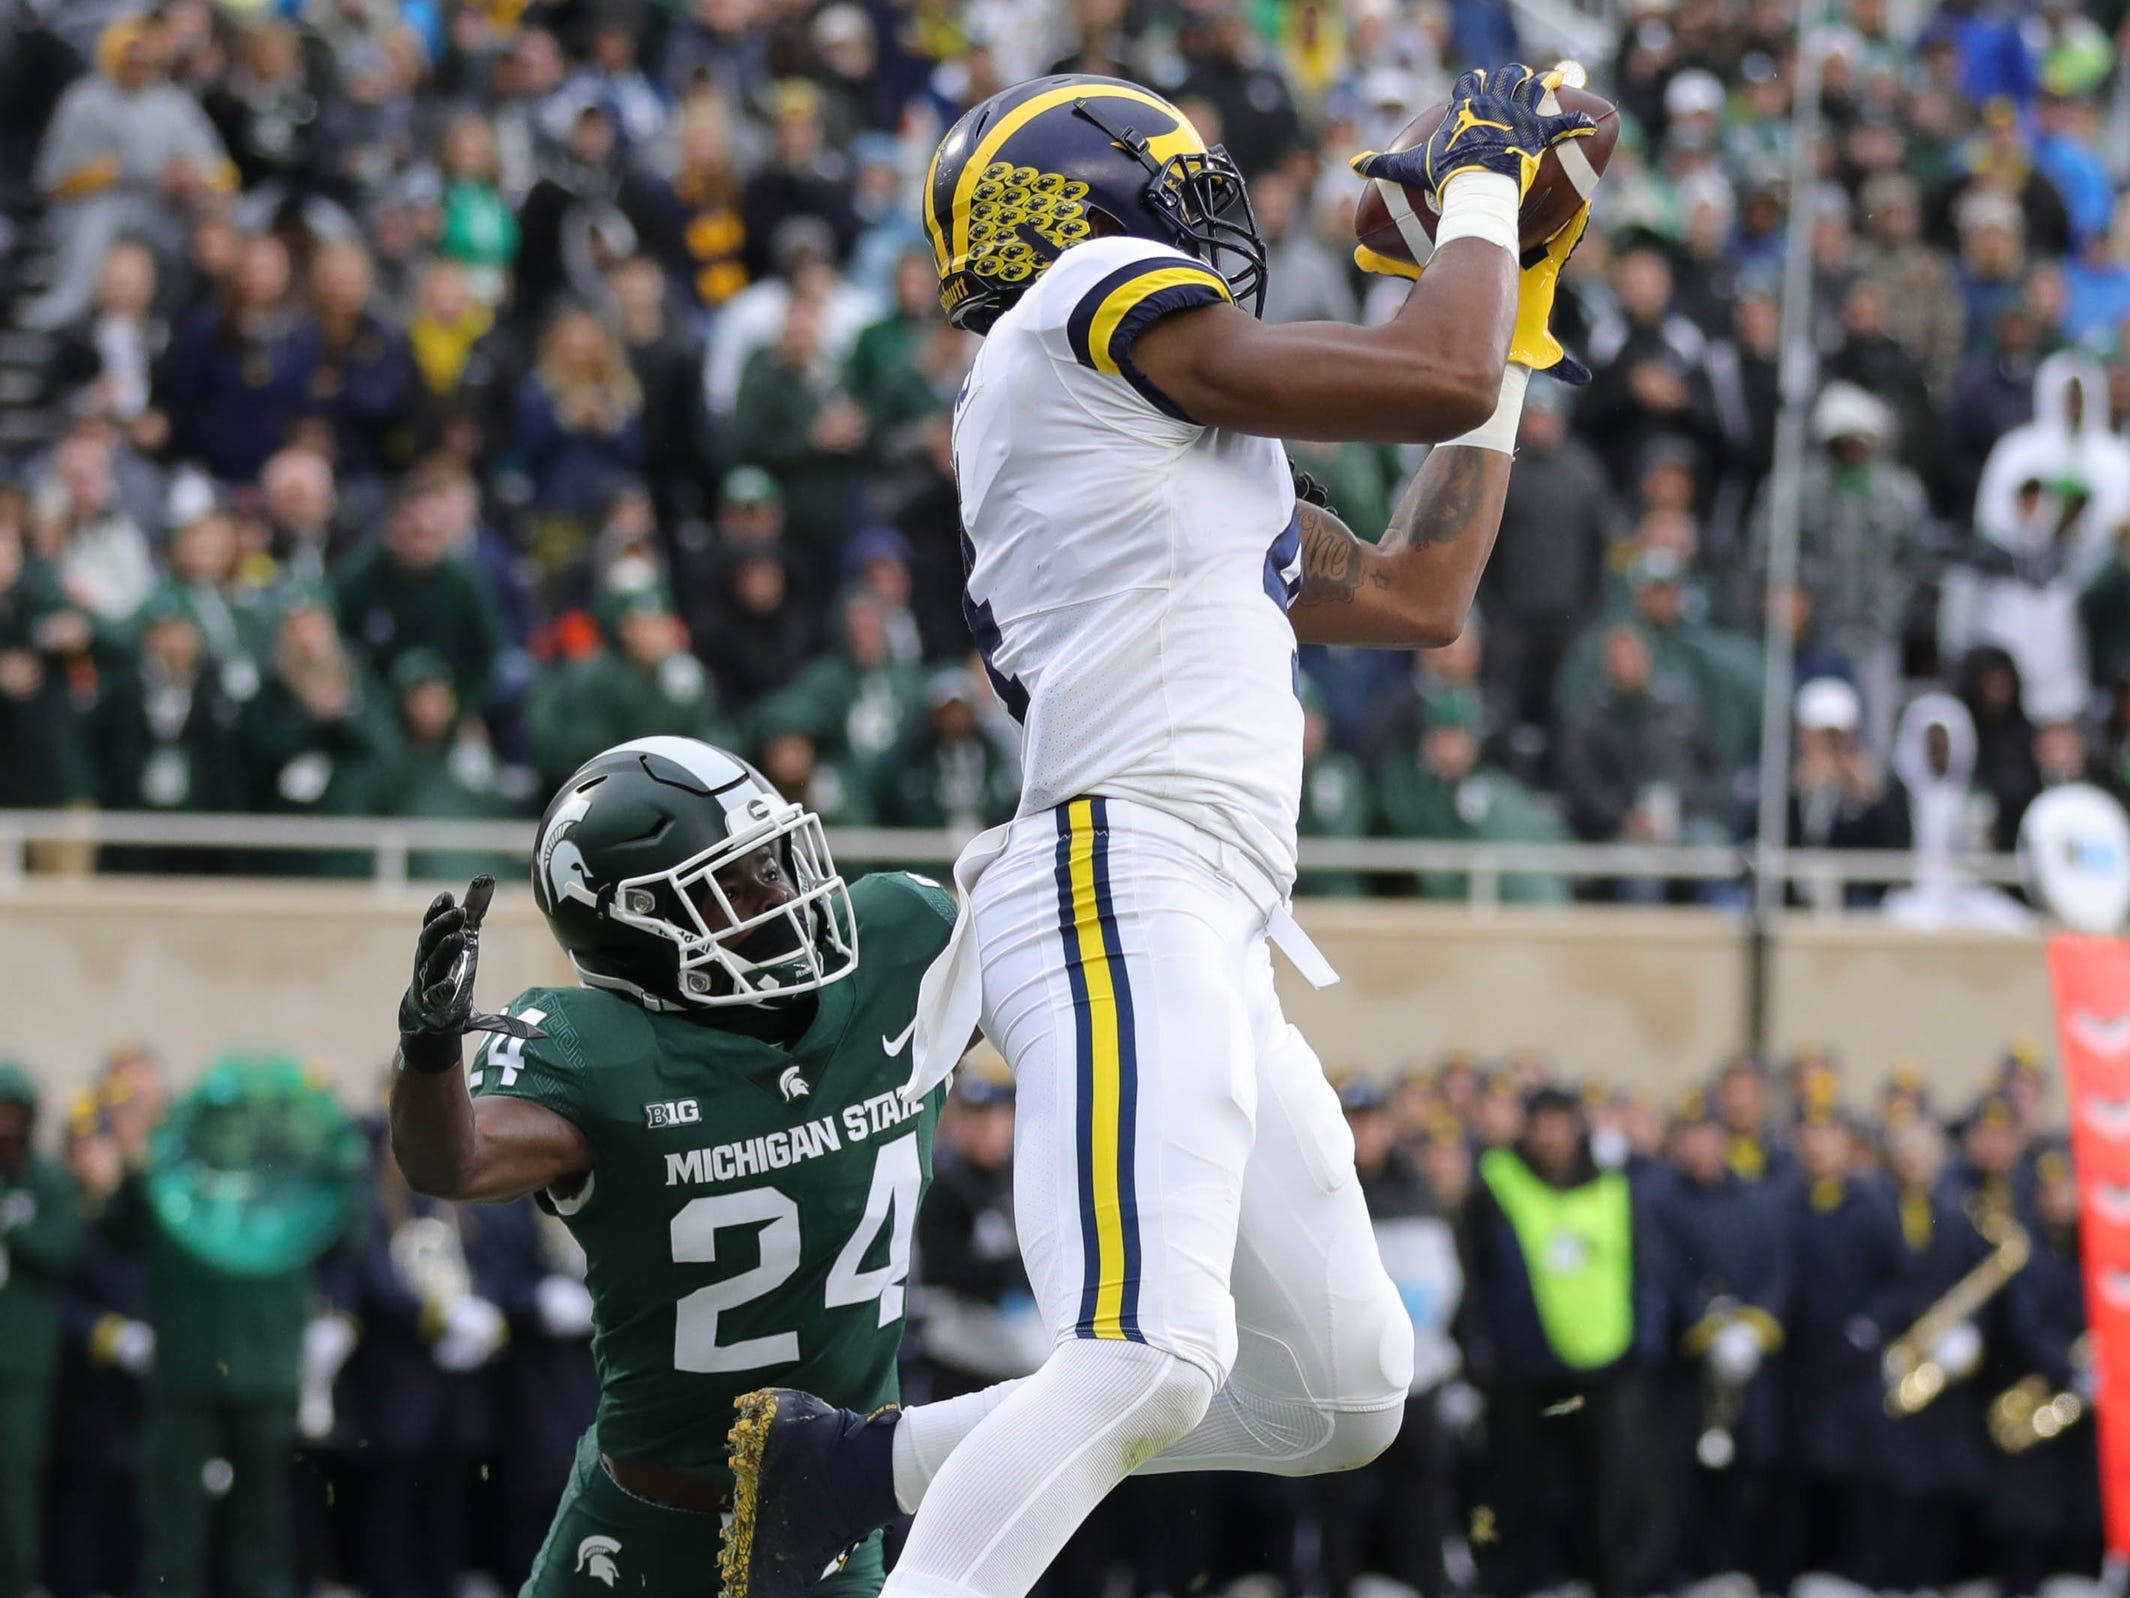 Michigan wide receiver Nico Collins catches a touchdown against Michigan State defensive back Tre Person during the first half in Spartan Stadium on Saturday, Oct. 20, 2018.